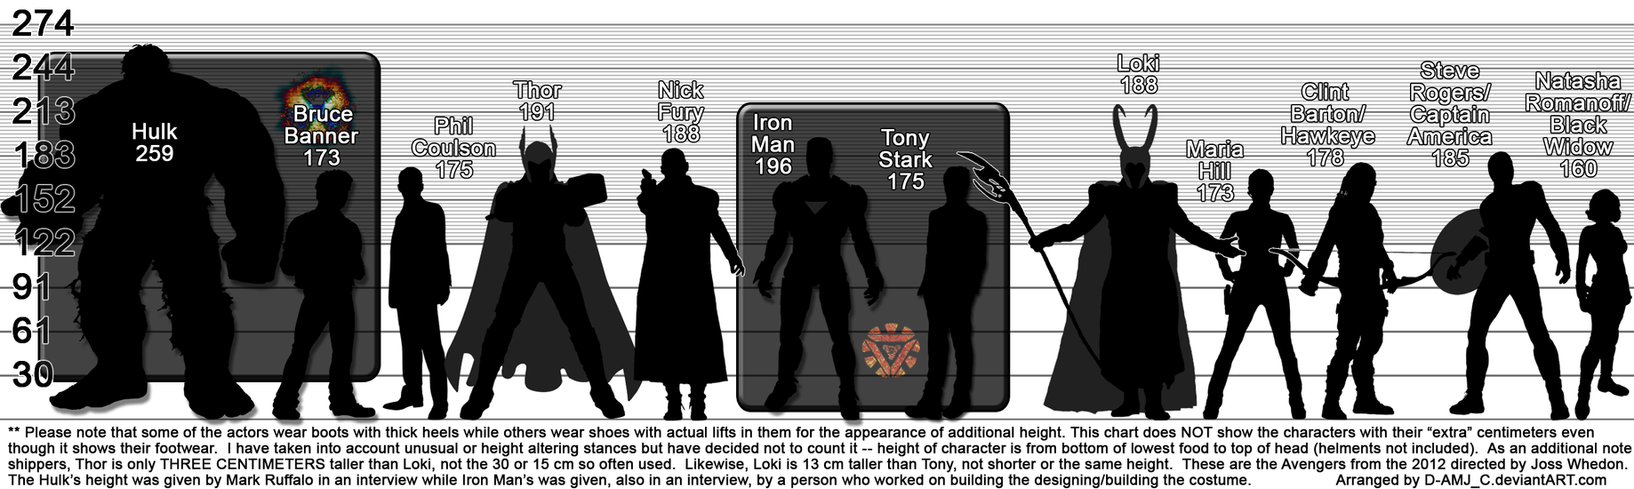 The Avengers (2012) Height Chart in Centimeters! by D-AMJ-C